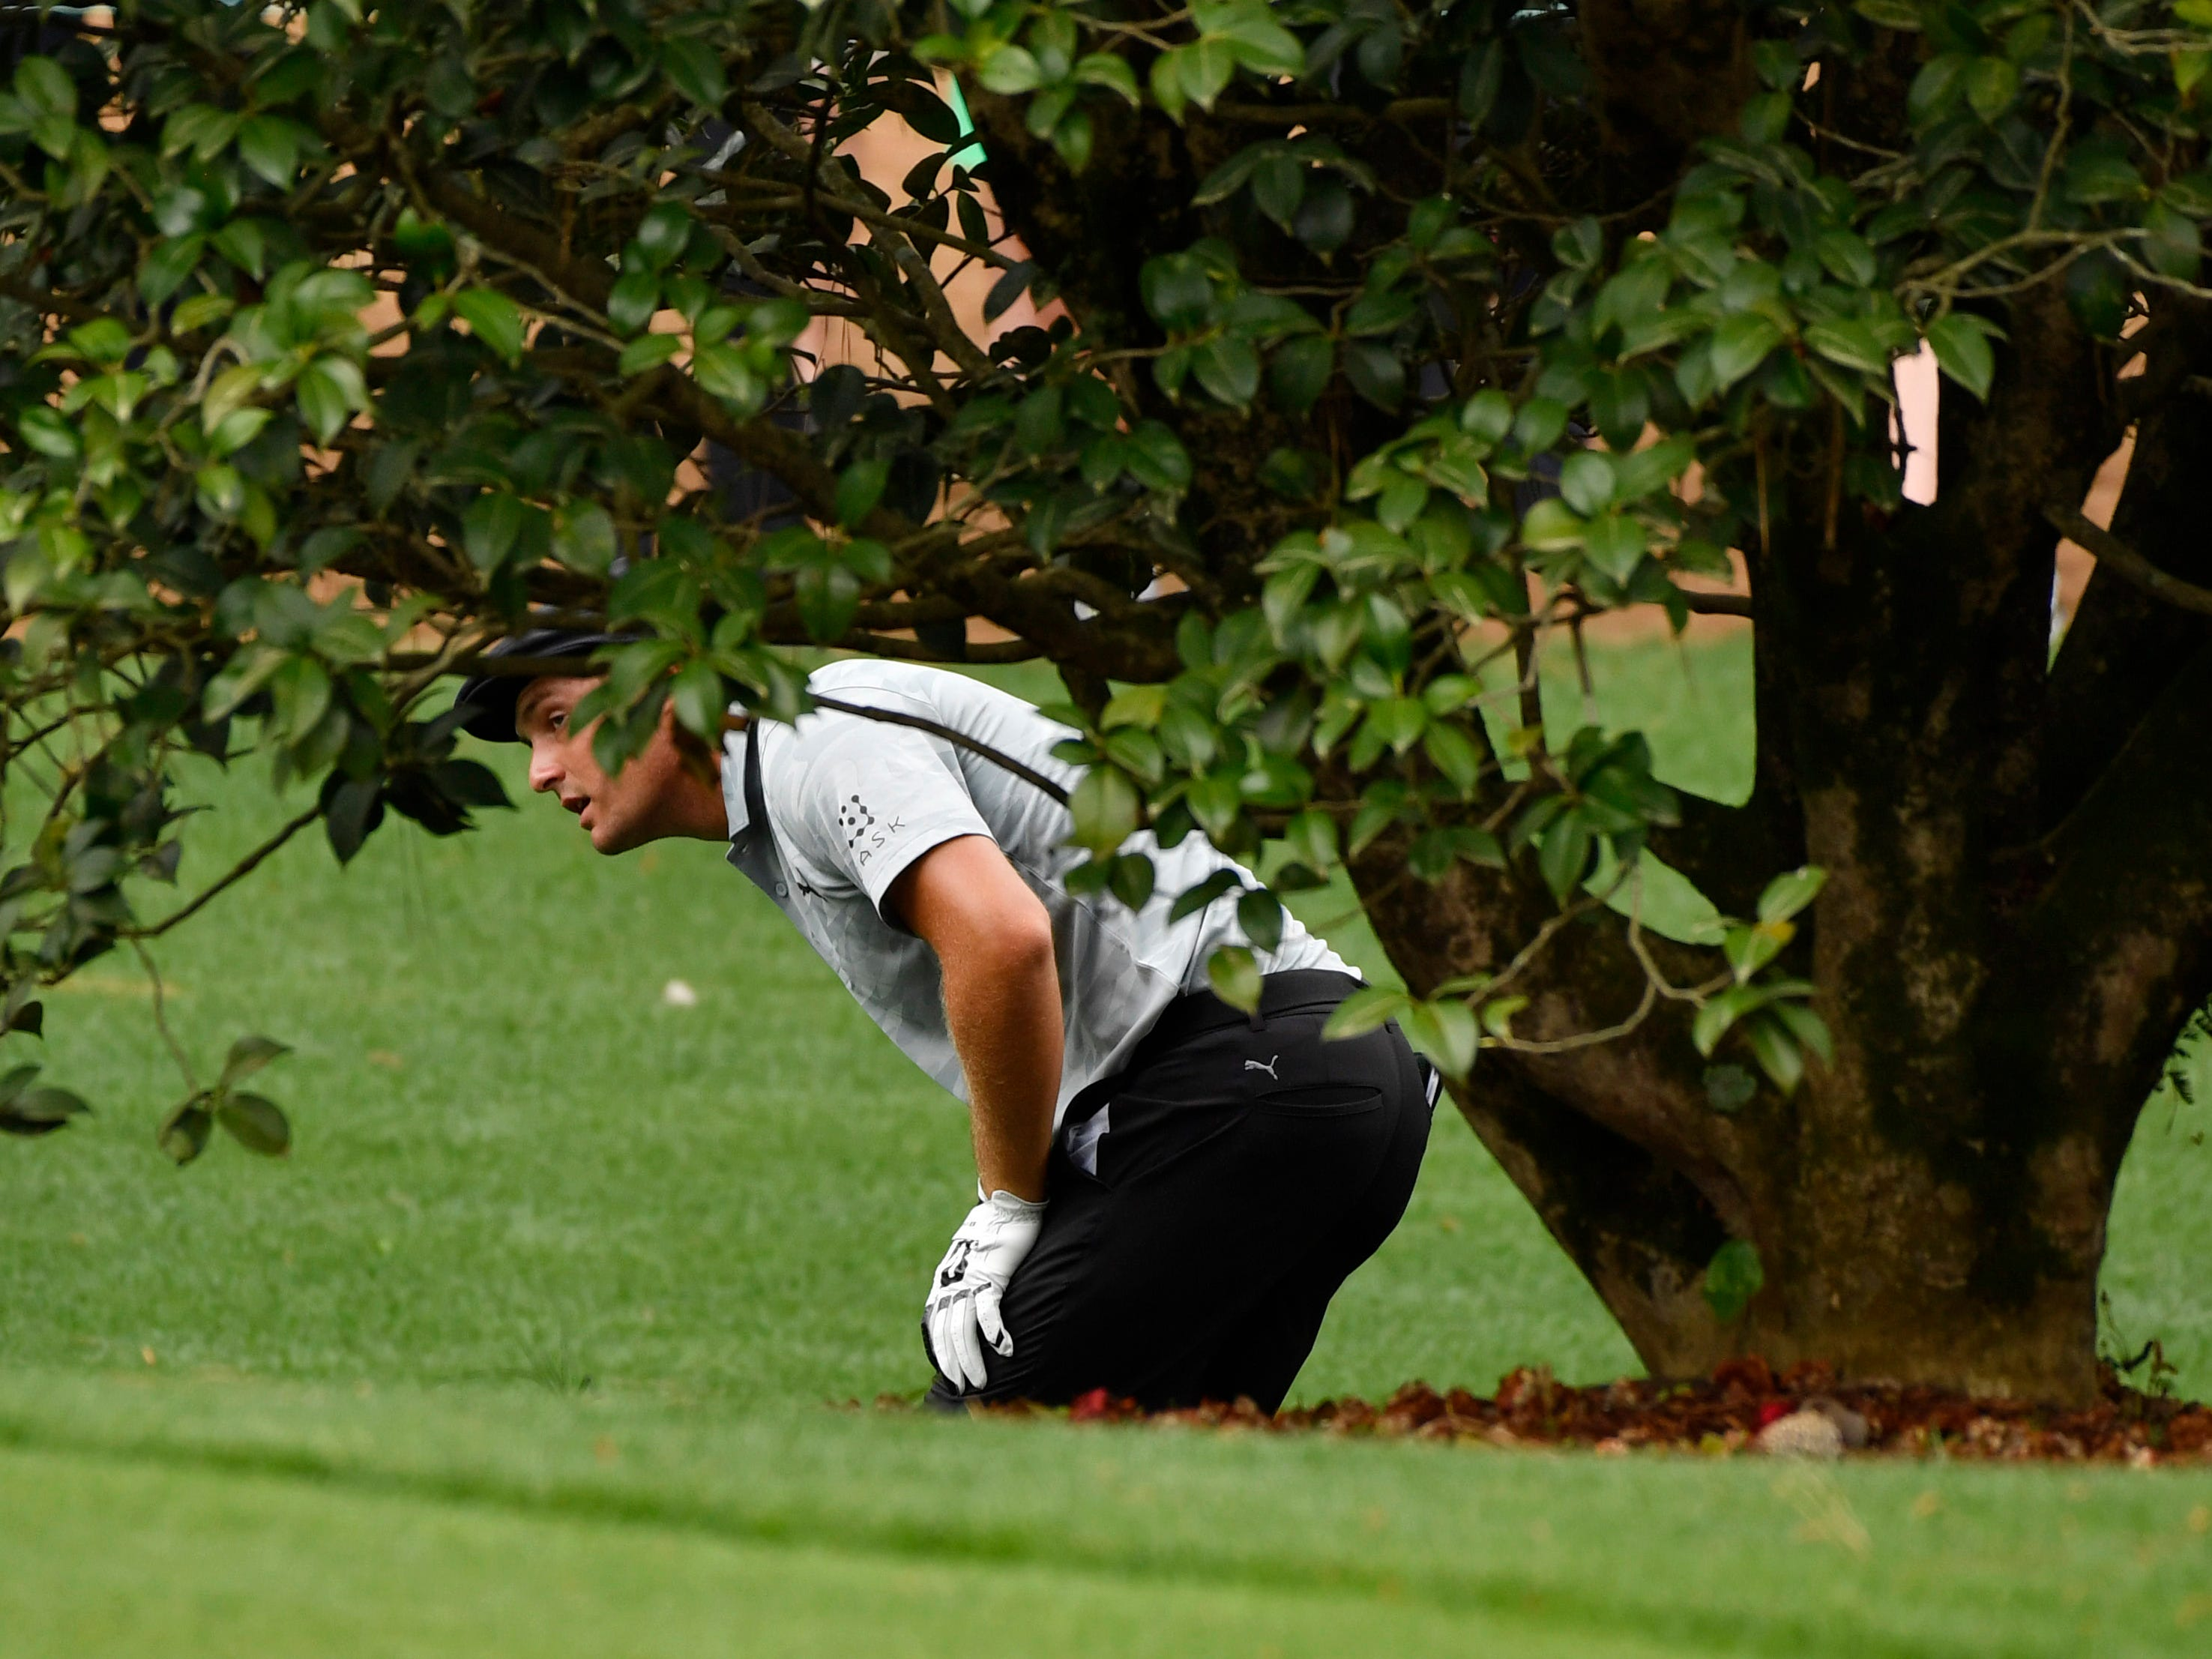 Bryson DeChambeau looks for his ball in the rough on the 10th hole during the second round of the Masters.